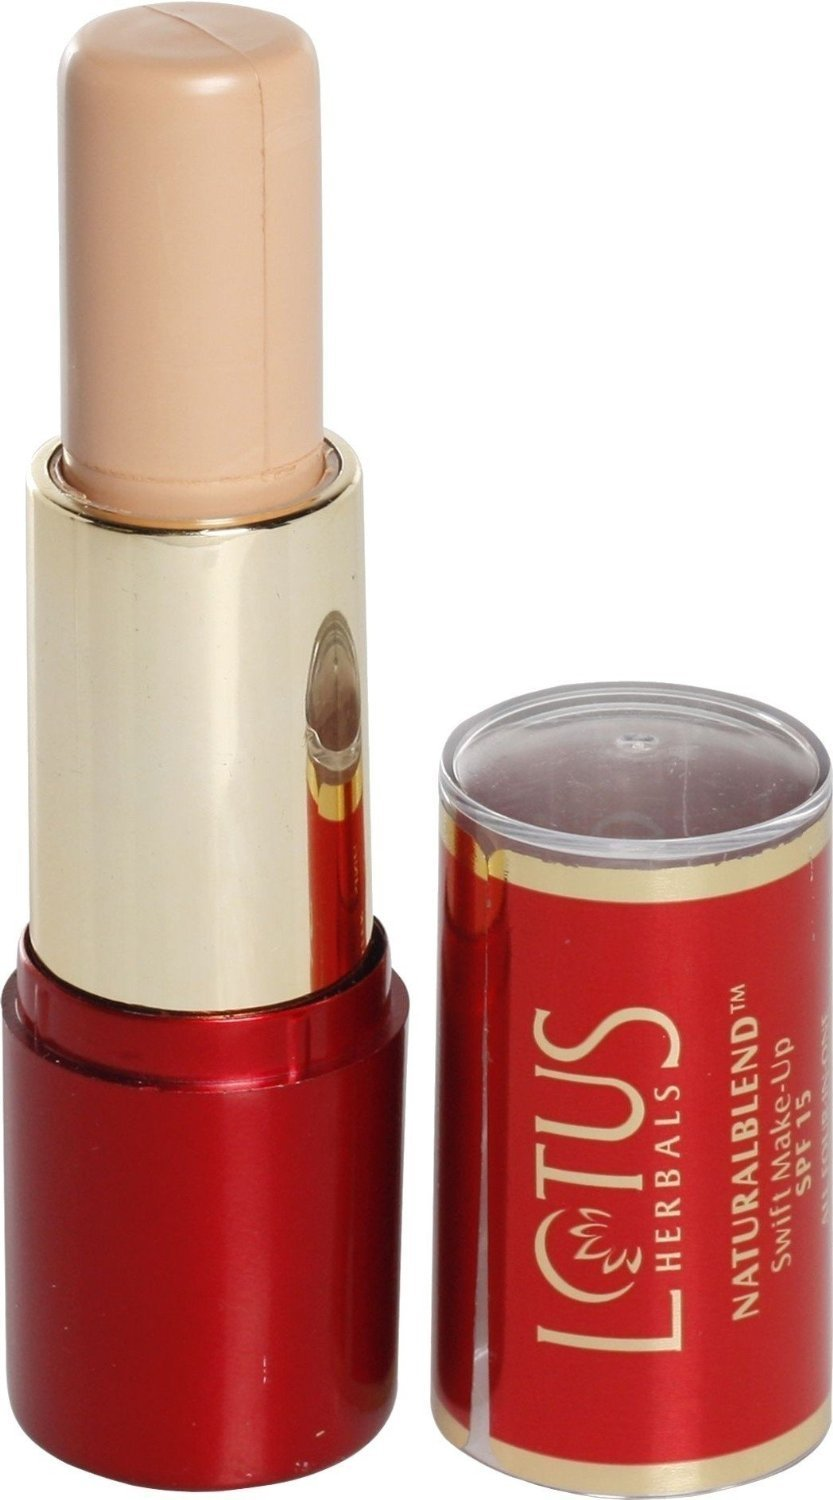 Lotus Herbals NaturalBlend Swift Make-up Stick SPF 15, Honey Beige